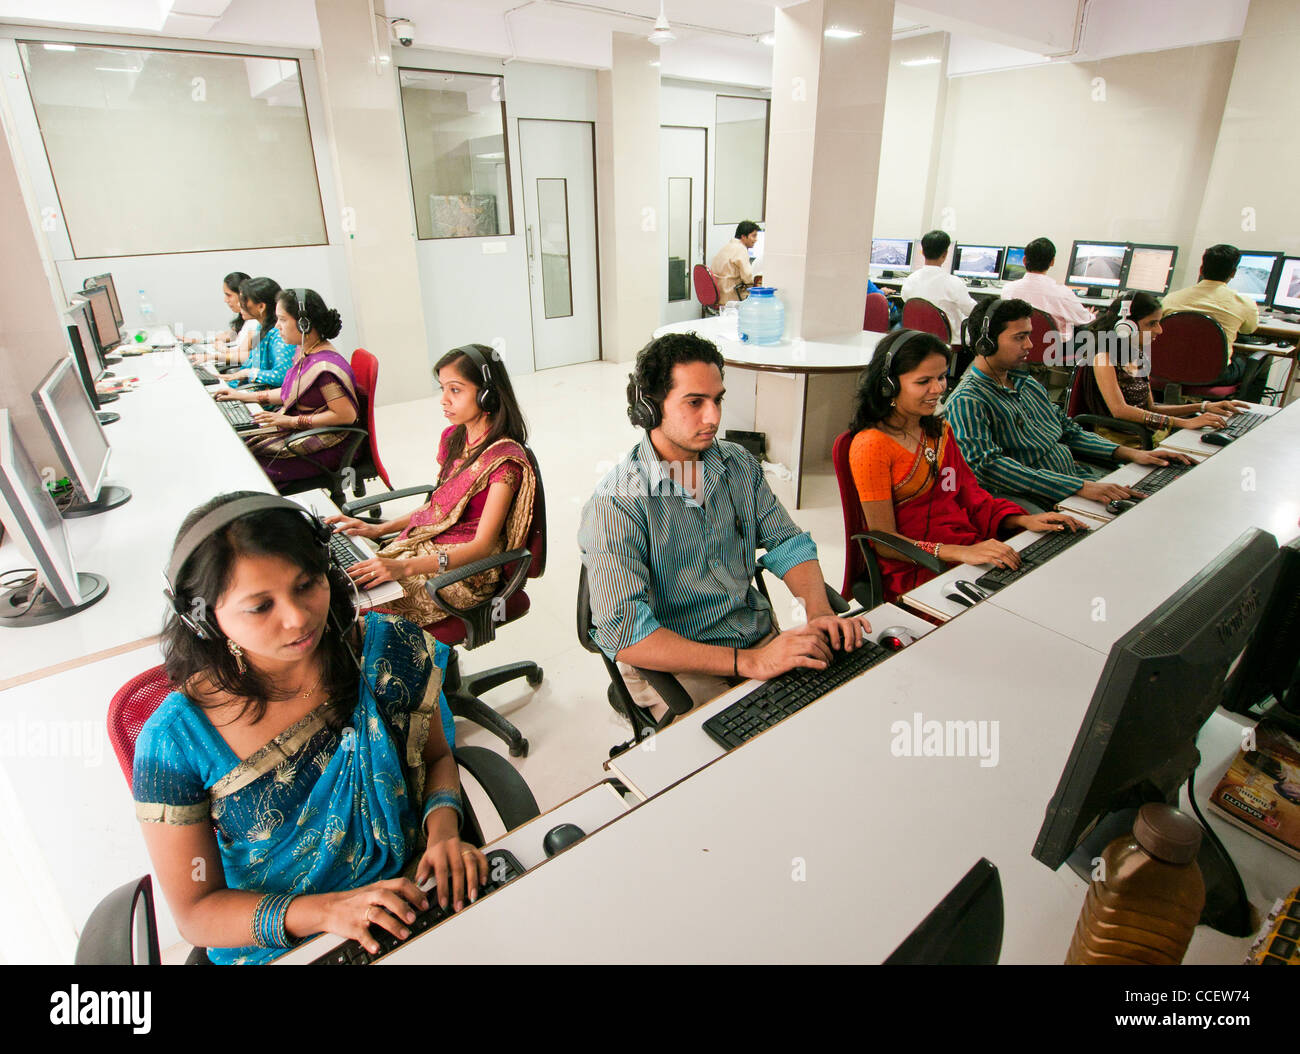 mumbai call center essay Ai bots suck at marking written essays,  india call centre staff in sex romp shocker  outsourced his or her call centre operation to mumbai.